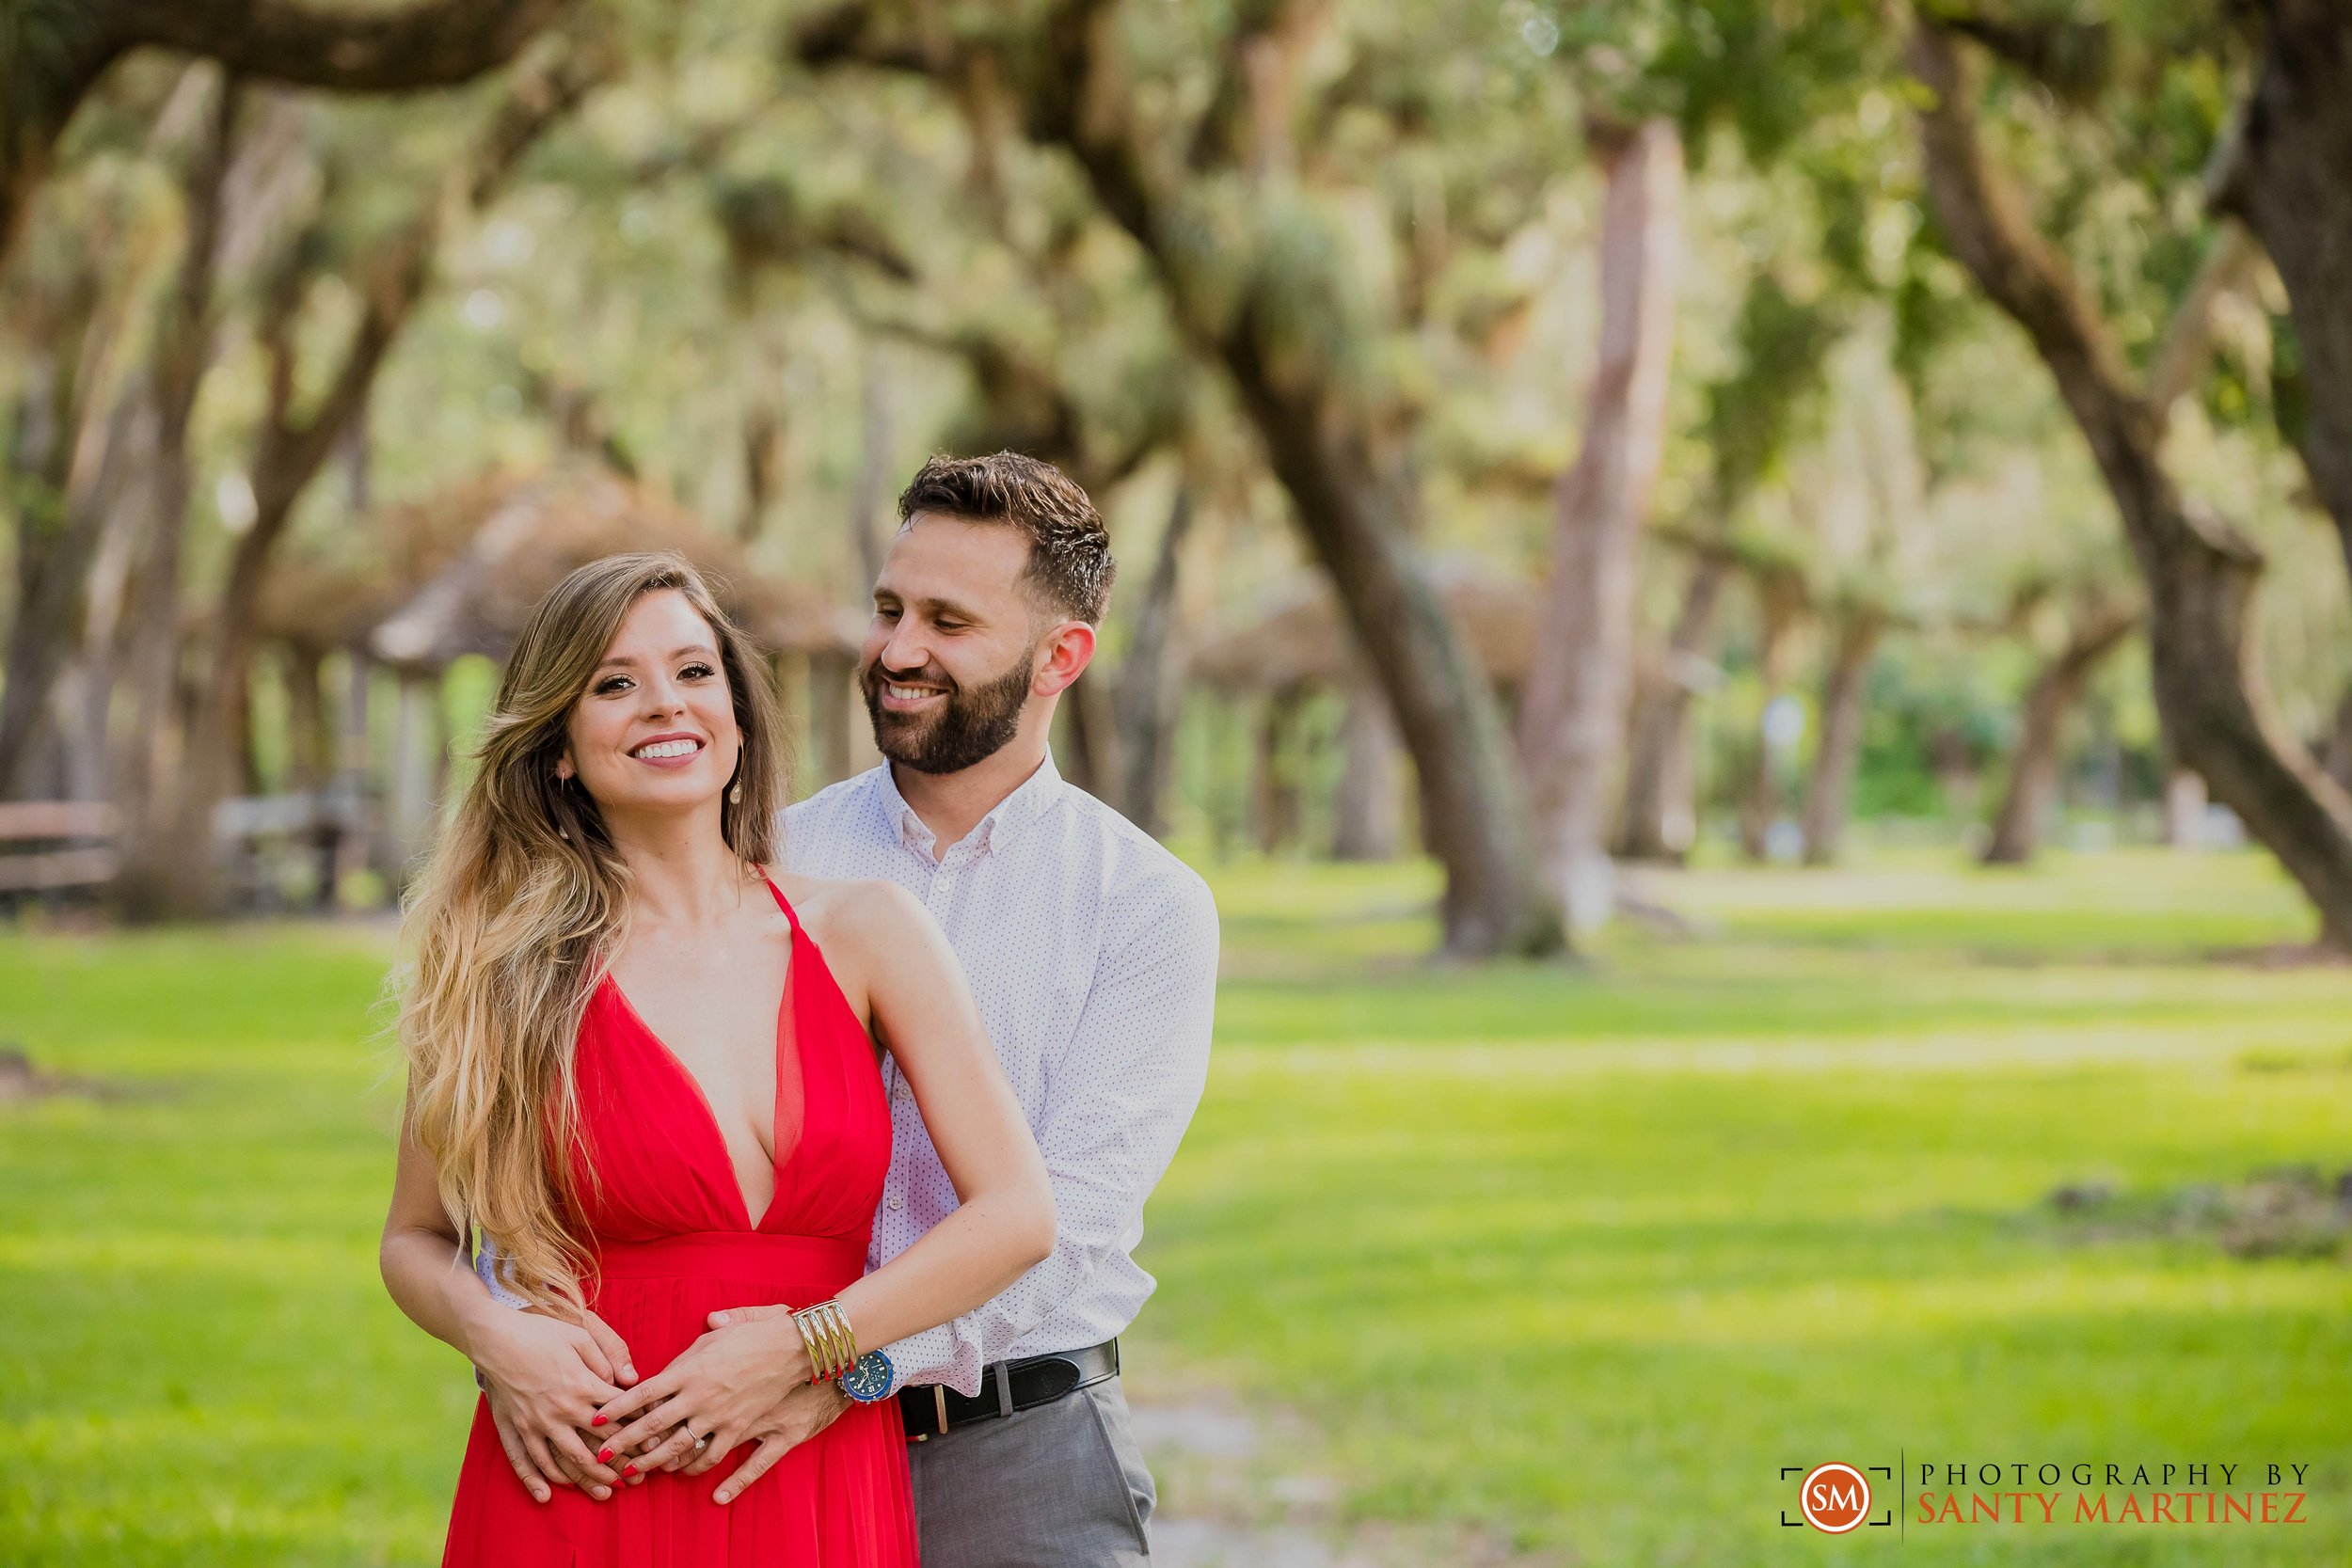 Engagement Session - Matheson Hammock Park - Santy Martinez Wedding Photographer-2.jpg